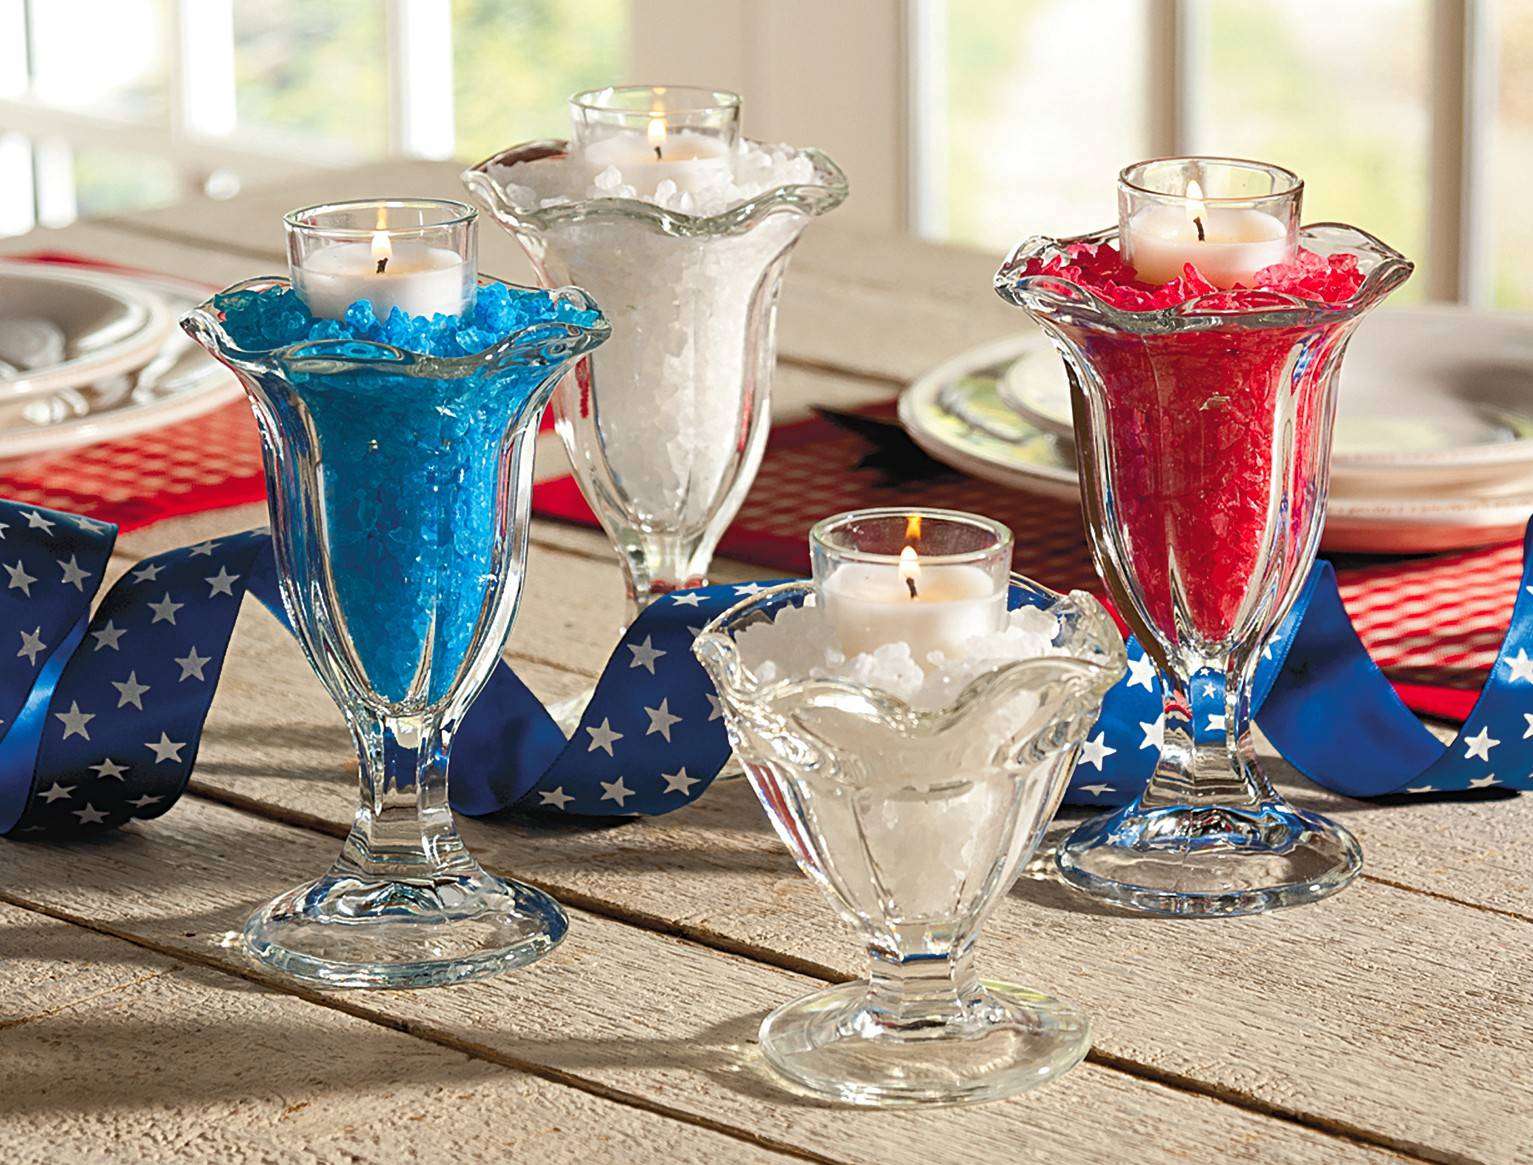 Fill old-fashioned ice cream glasses with Americana-colored rock candy to craft sweet bases for votives.